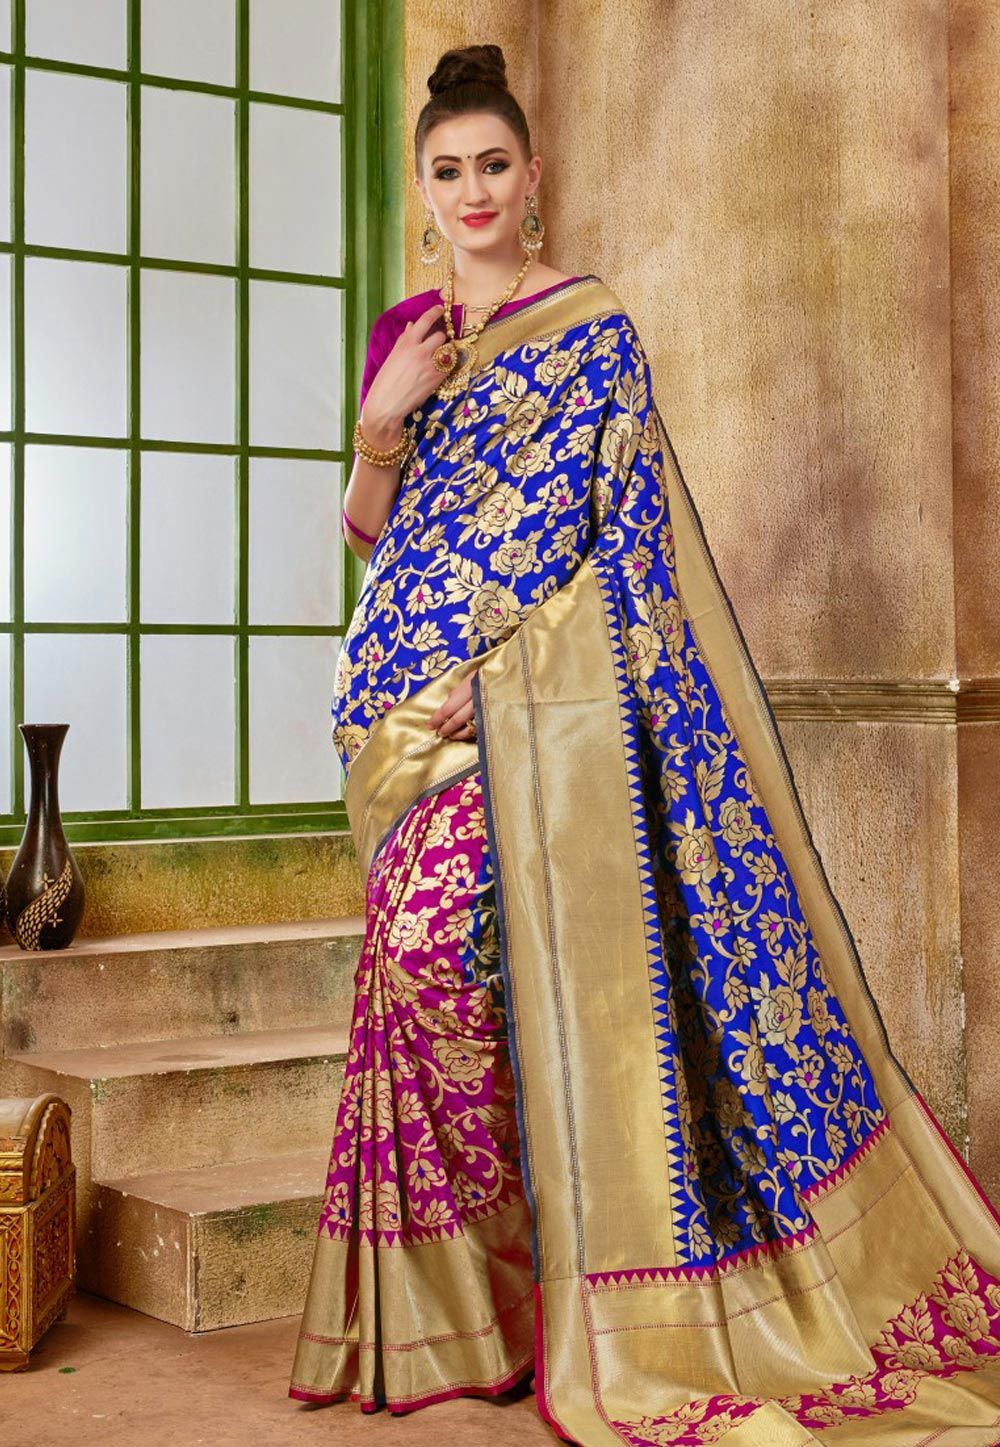 ef910d2e5b7c83 Buy Blue Banarasi Silk Saree With Blouse 153746 with blouse online at  lowest price from vast